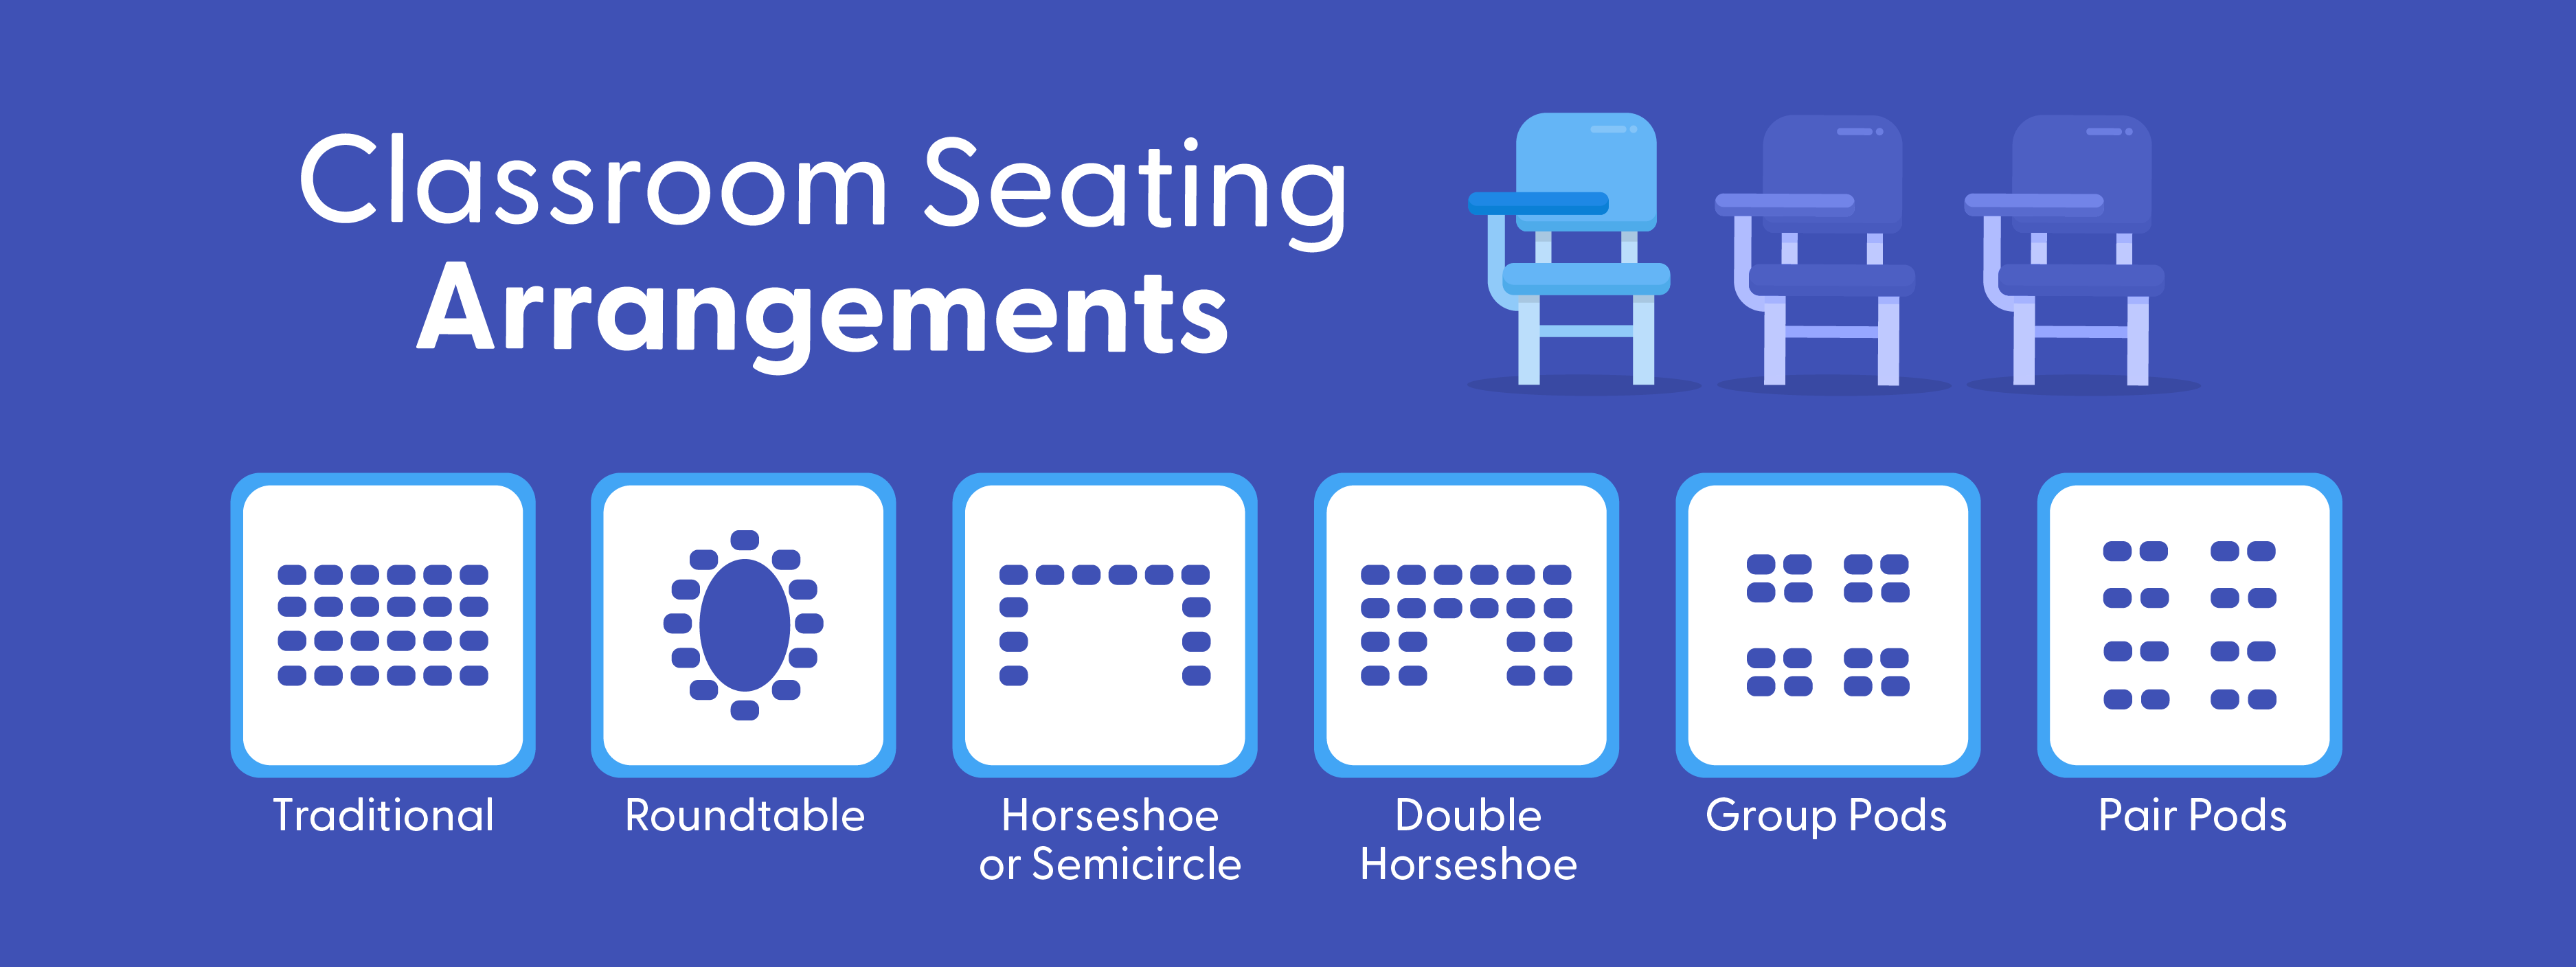 Image of different seating arrangement styles